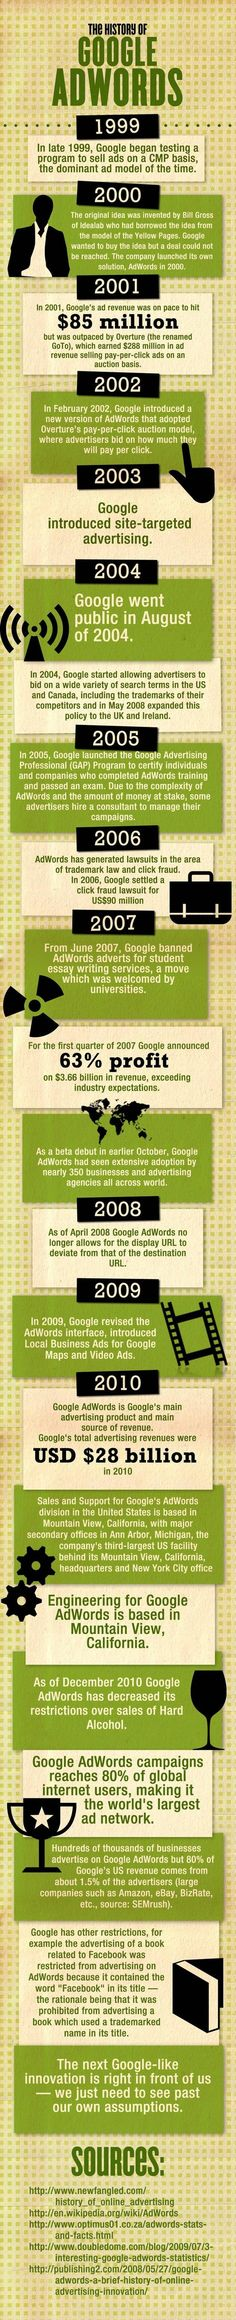 The history of Google Adwords #infographic